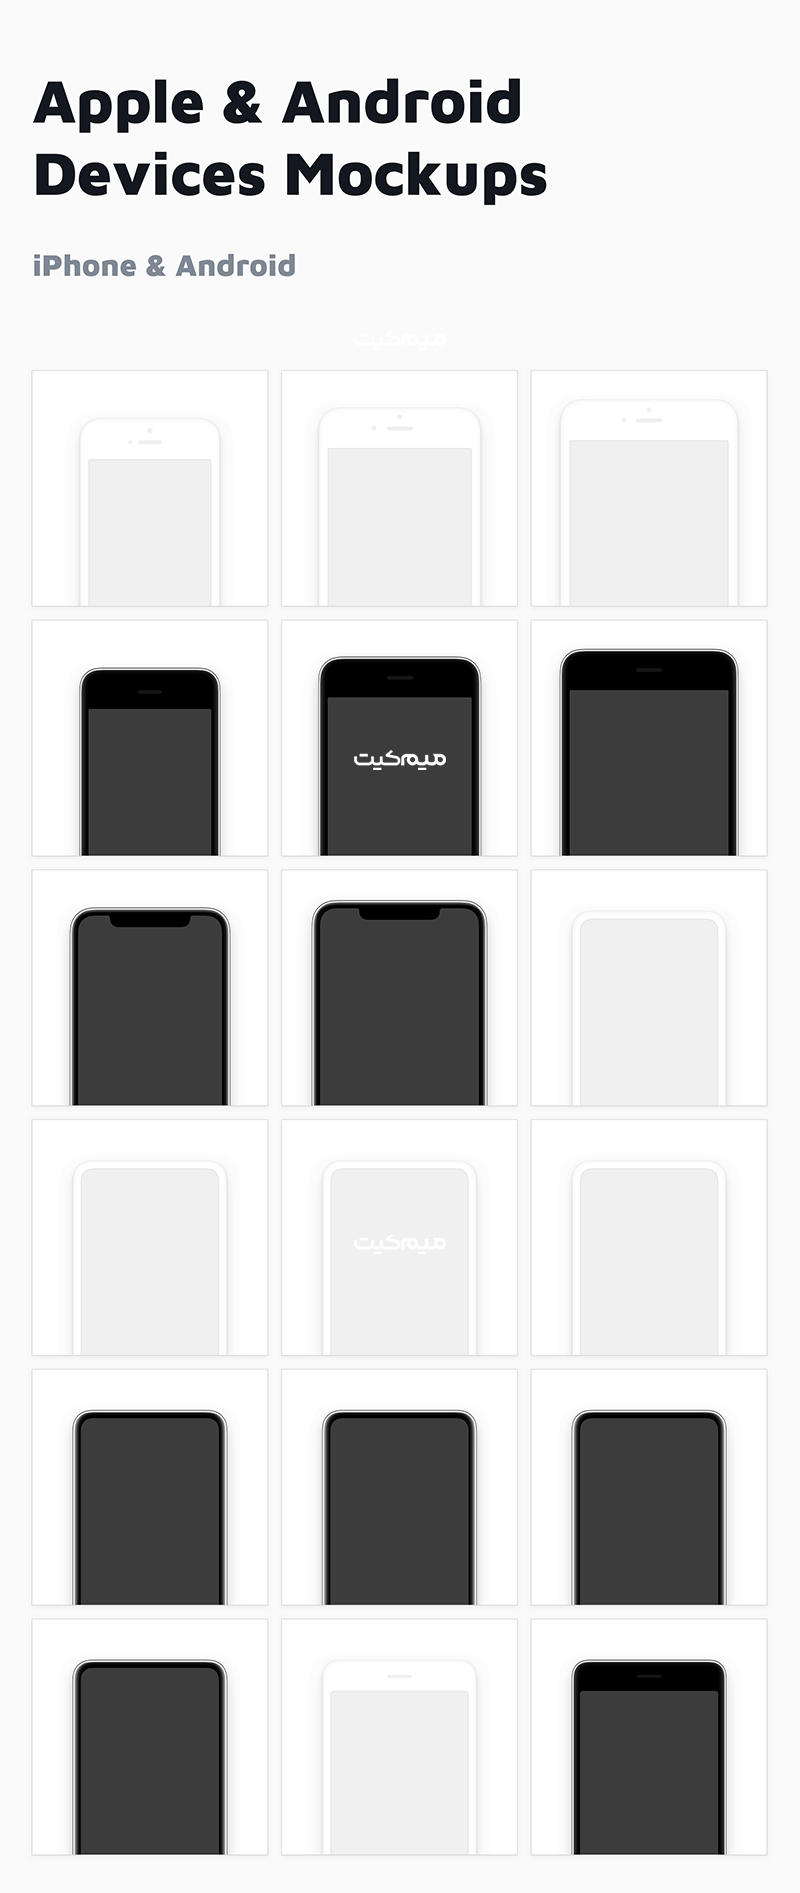 Apple & Android Devices Mockups